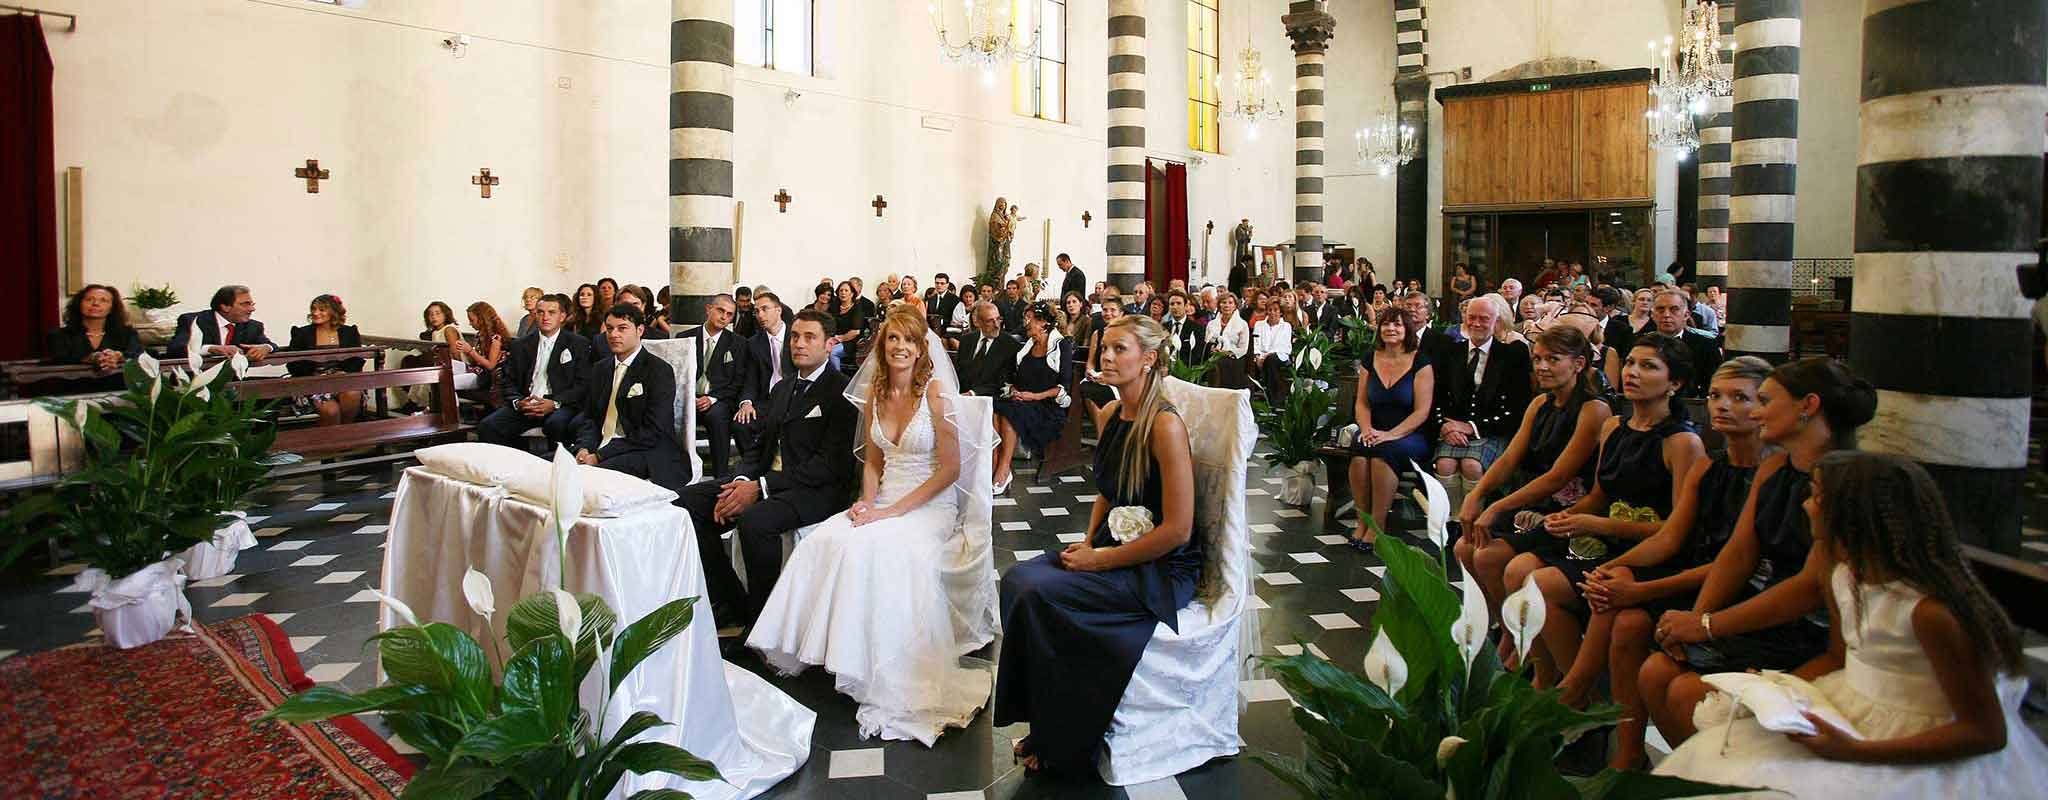 Destination weddings ceremonies events holidays wedding ceremonies junglespirit